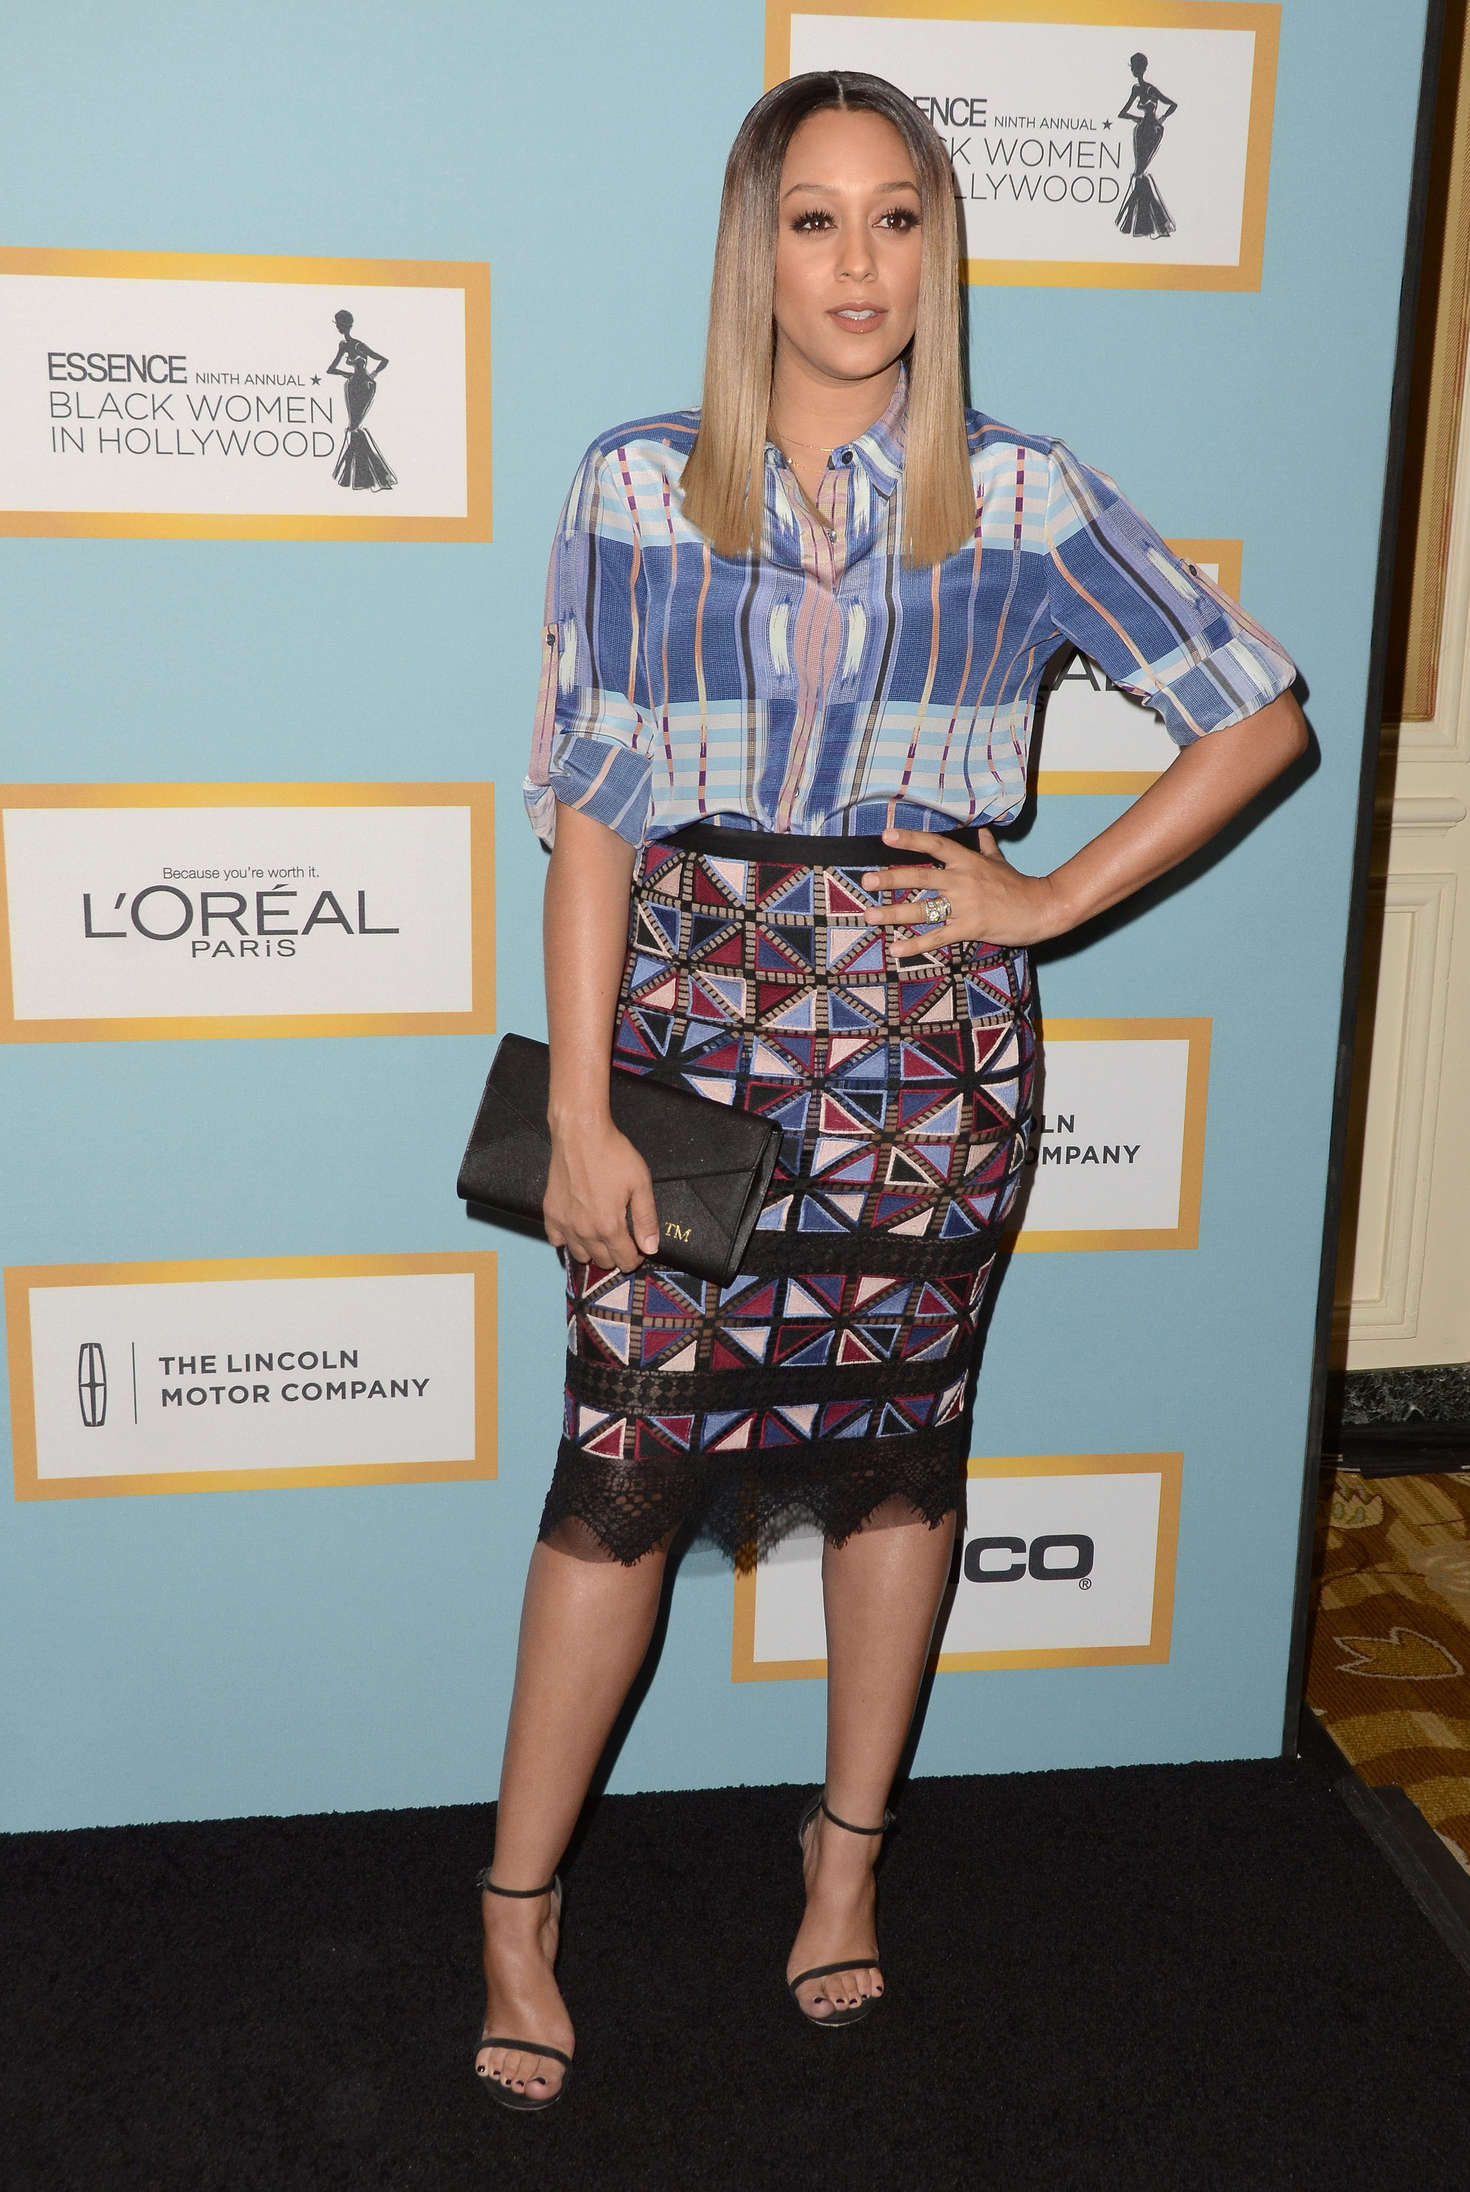 Tia Mowry ESSENCE Black Women in Hollywood Awards Luncheon in Beverly Hills